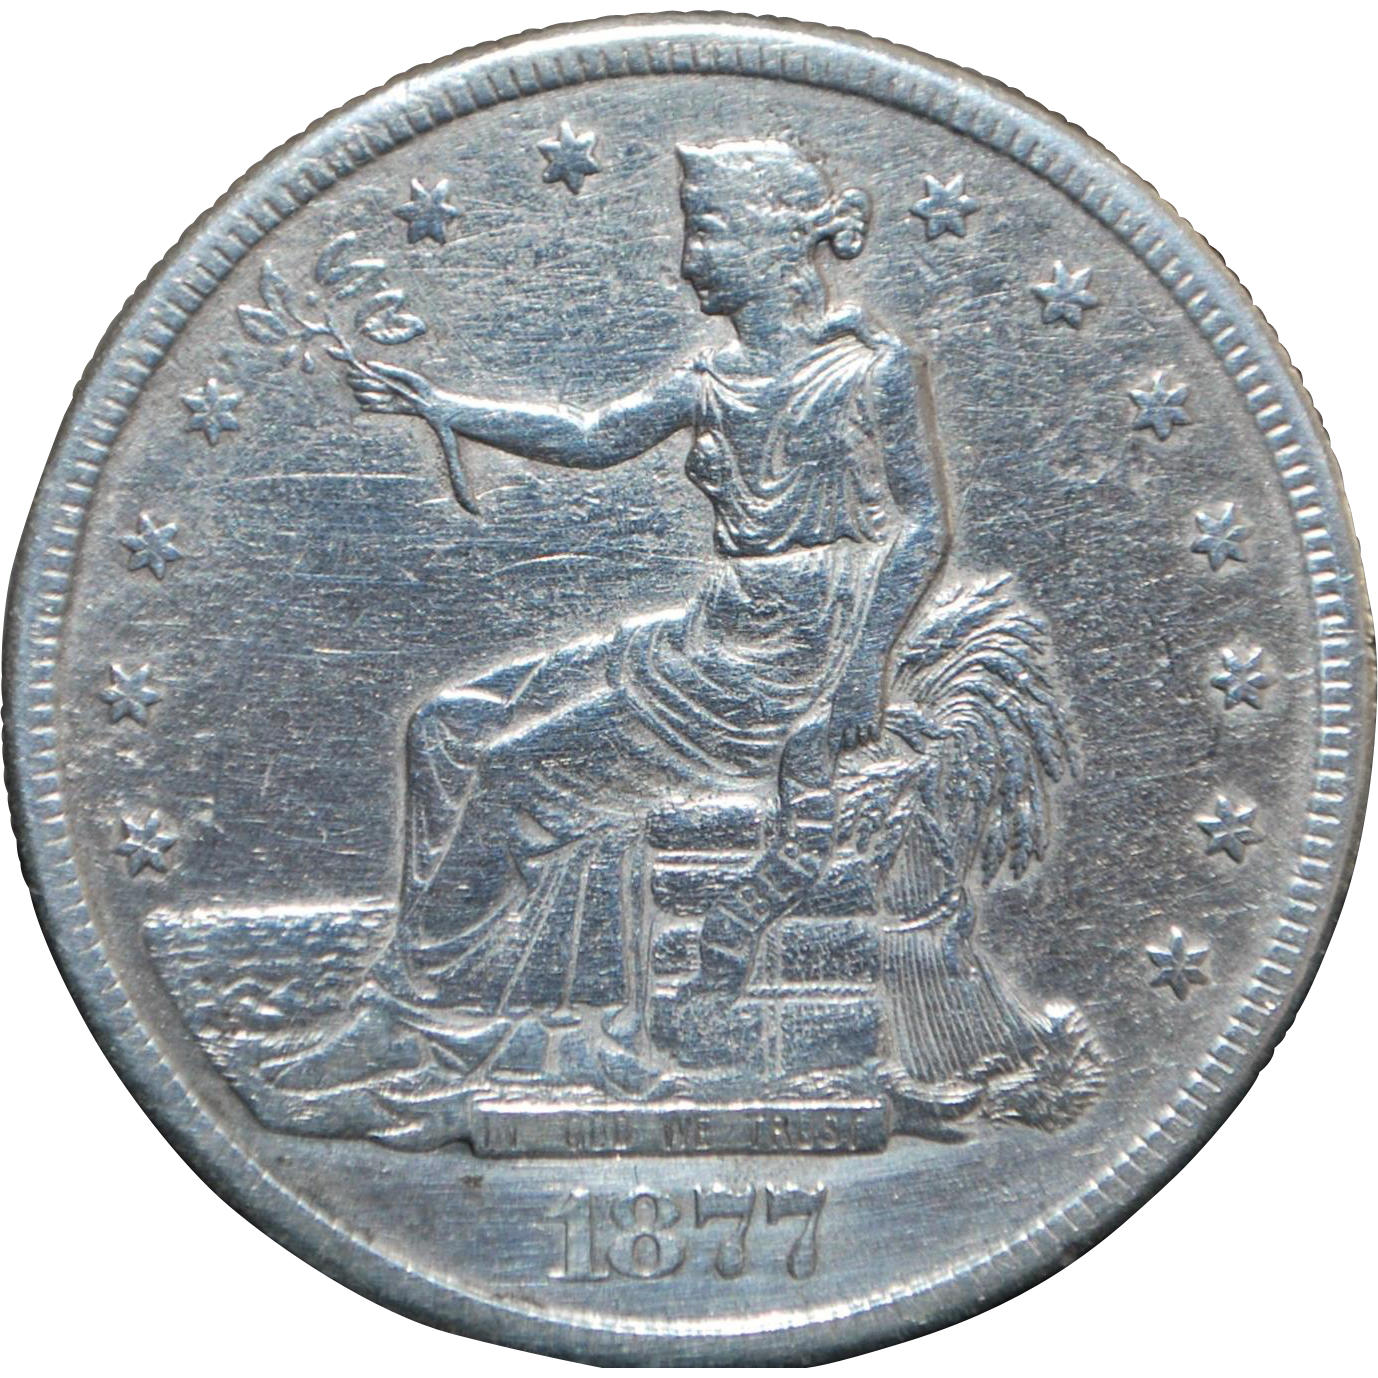 United States Silver Trade Dollar - 1877 - S